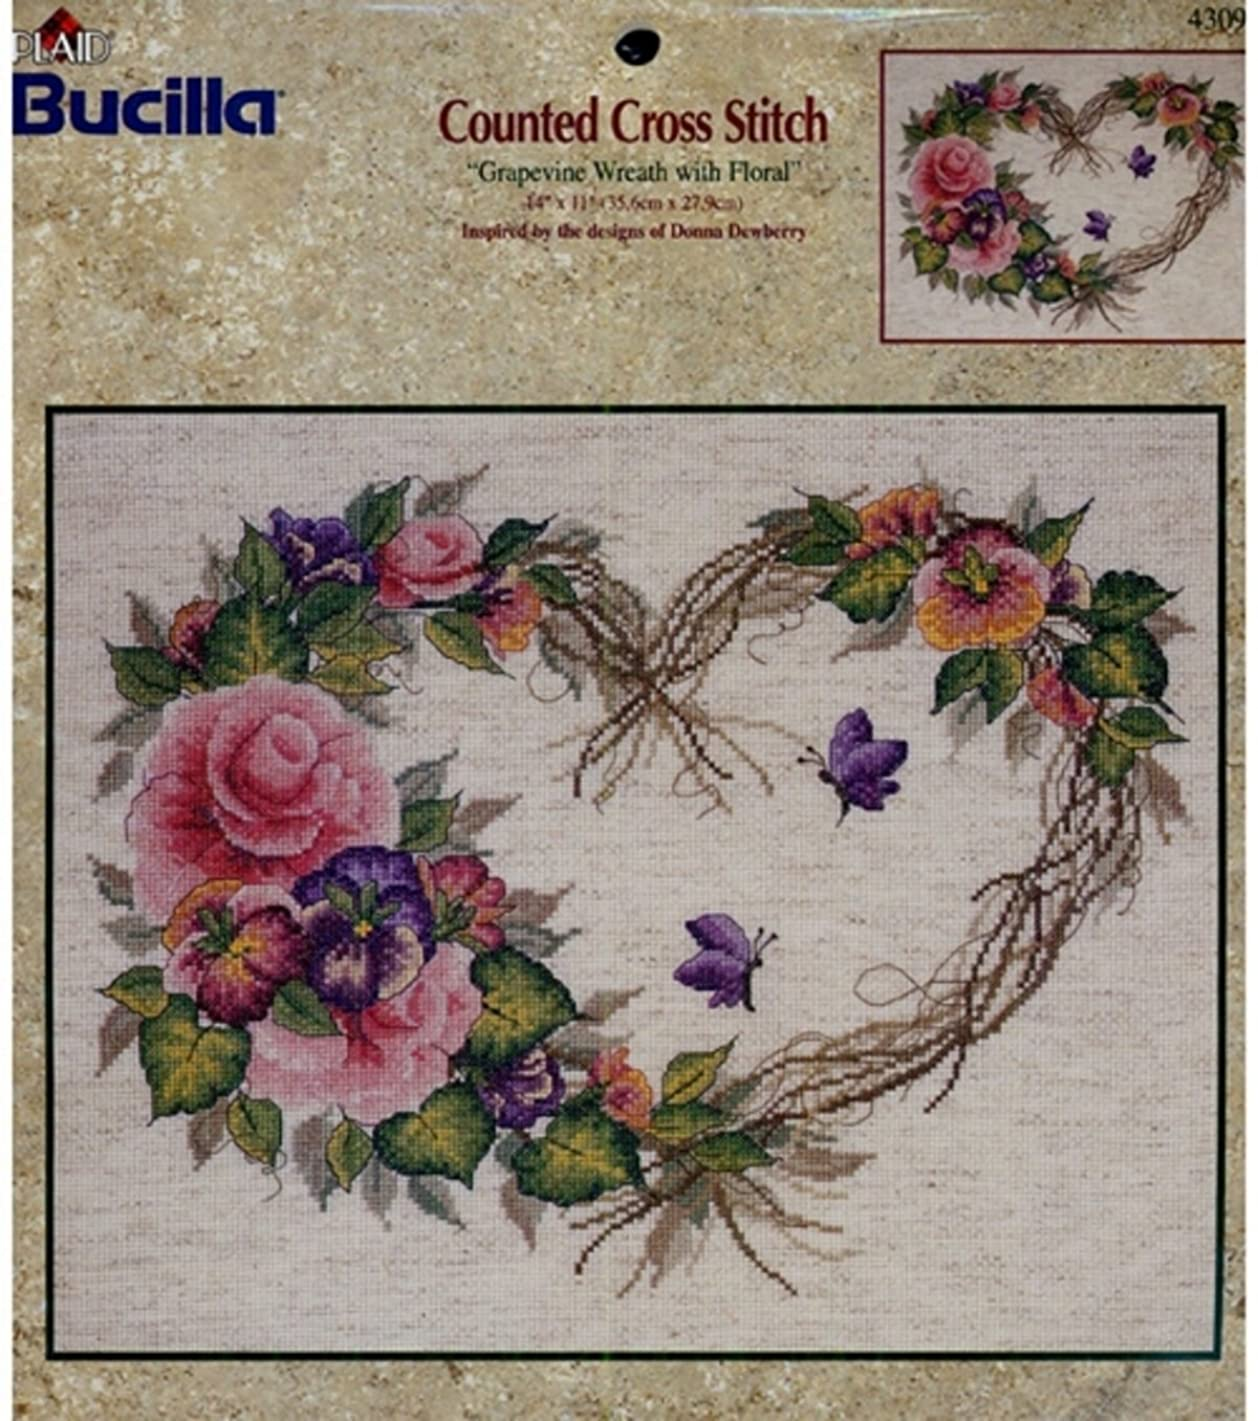 Bucilla Counted Cross Stitch Kit, 14 by 11-Inch, 43092 Grapevine Wreath